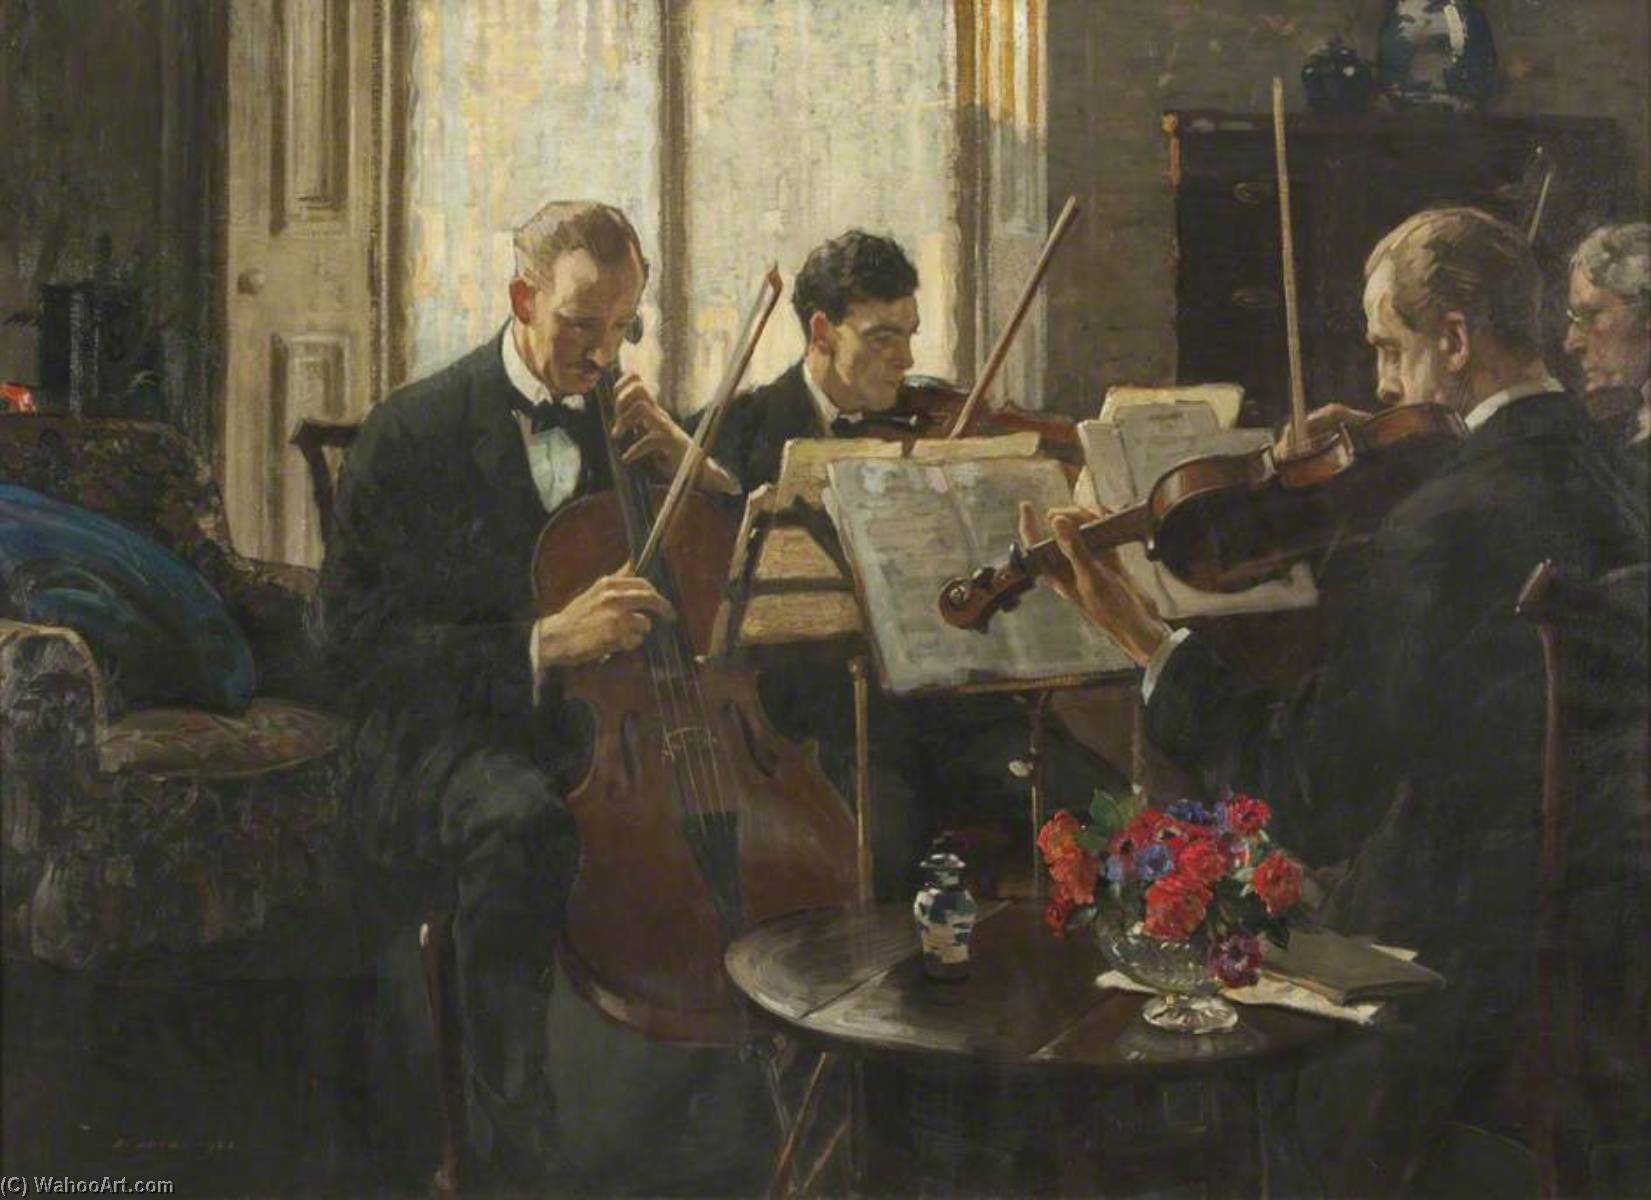 o Quarteto, 1910 por Richard Jack (1866-1952, United Kingdom) | WahooArt.com